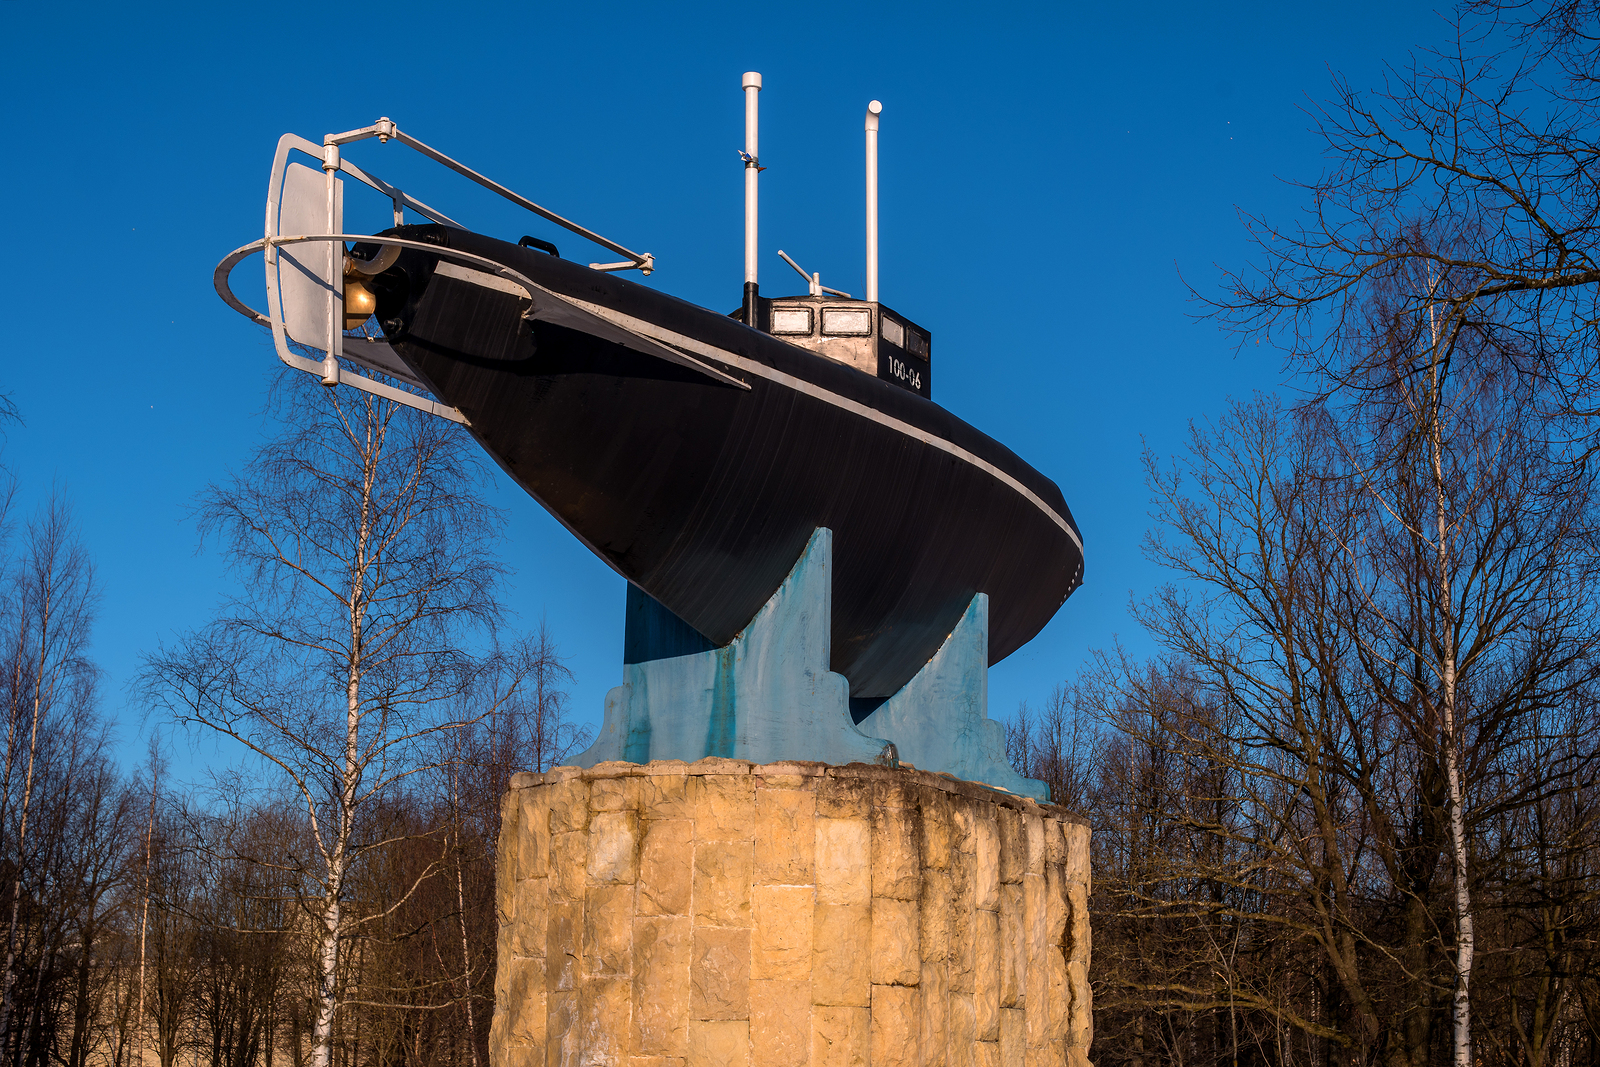 Gatchina, Russia - March 27, 2018: Monument of the first Russian submarine. Submarine was built in 1879 and tested in 1881 at Silver Lake in front of the Gatchina Palace in the presence of Emperor Alexander III.